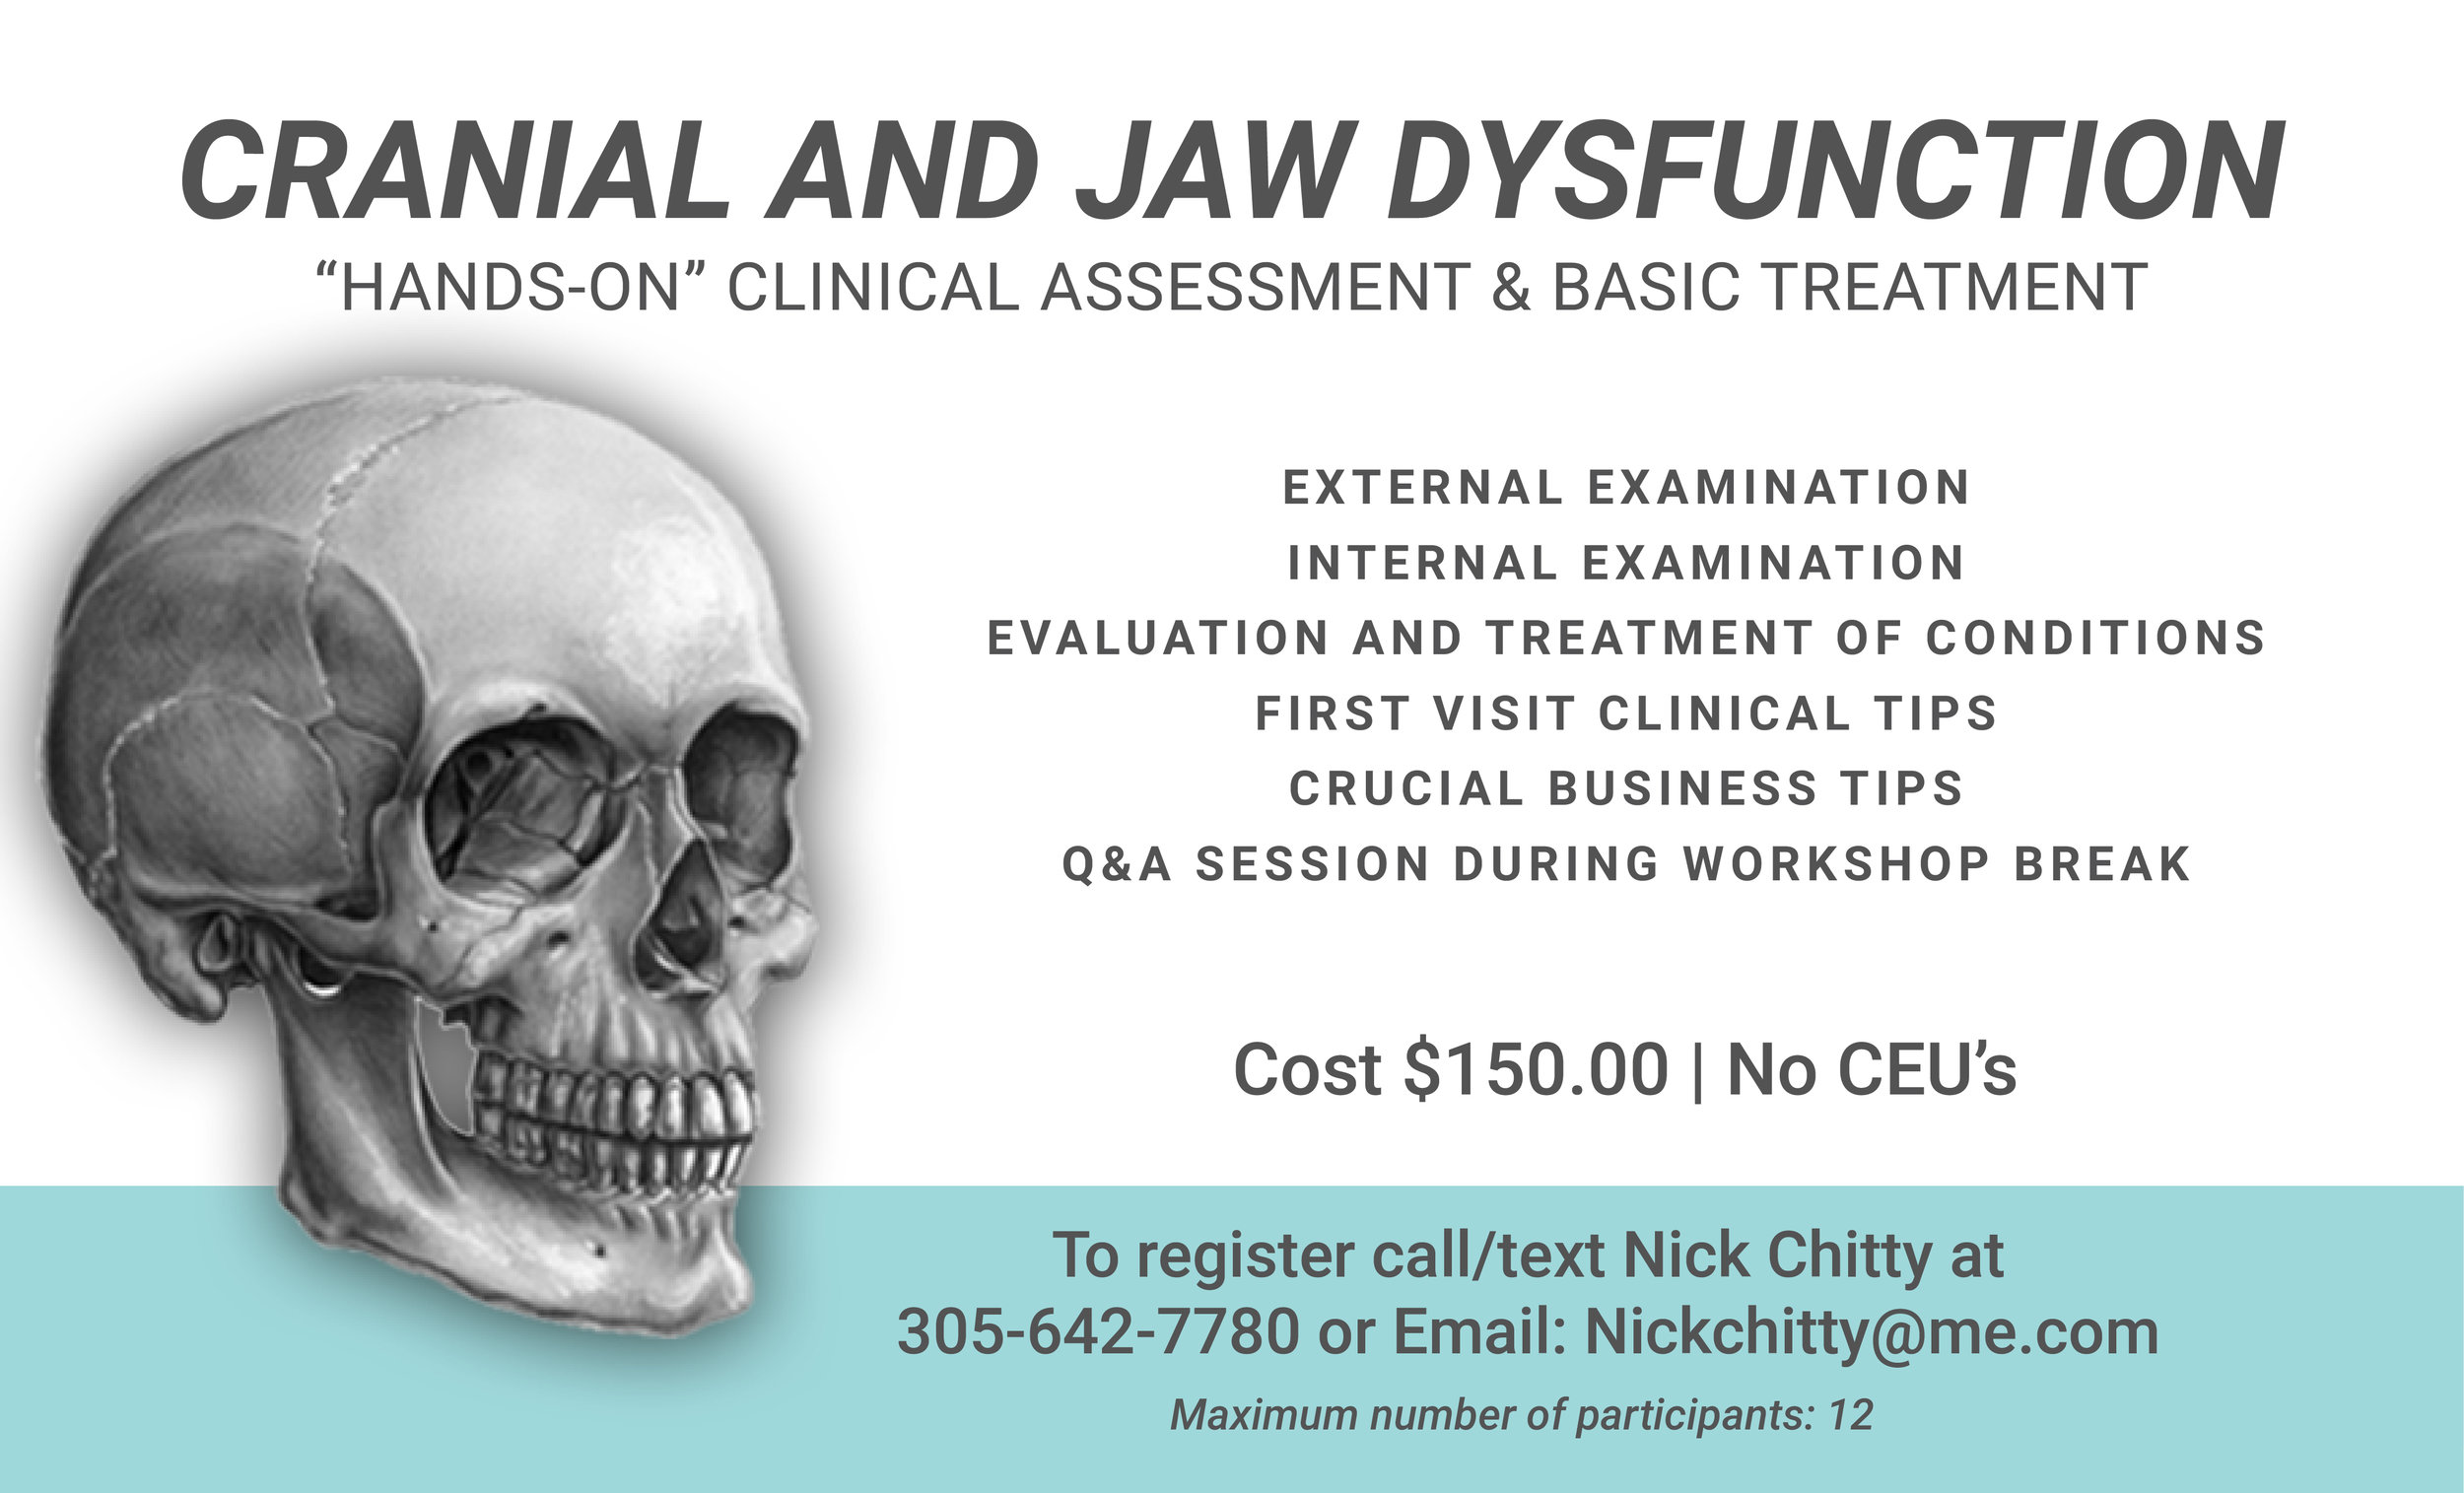 Cranial-Jaw_Workshop_Flyer_1_website-01.jpg